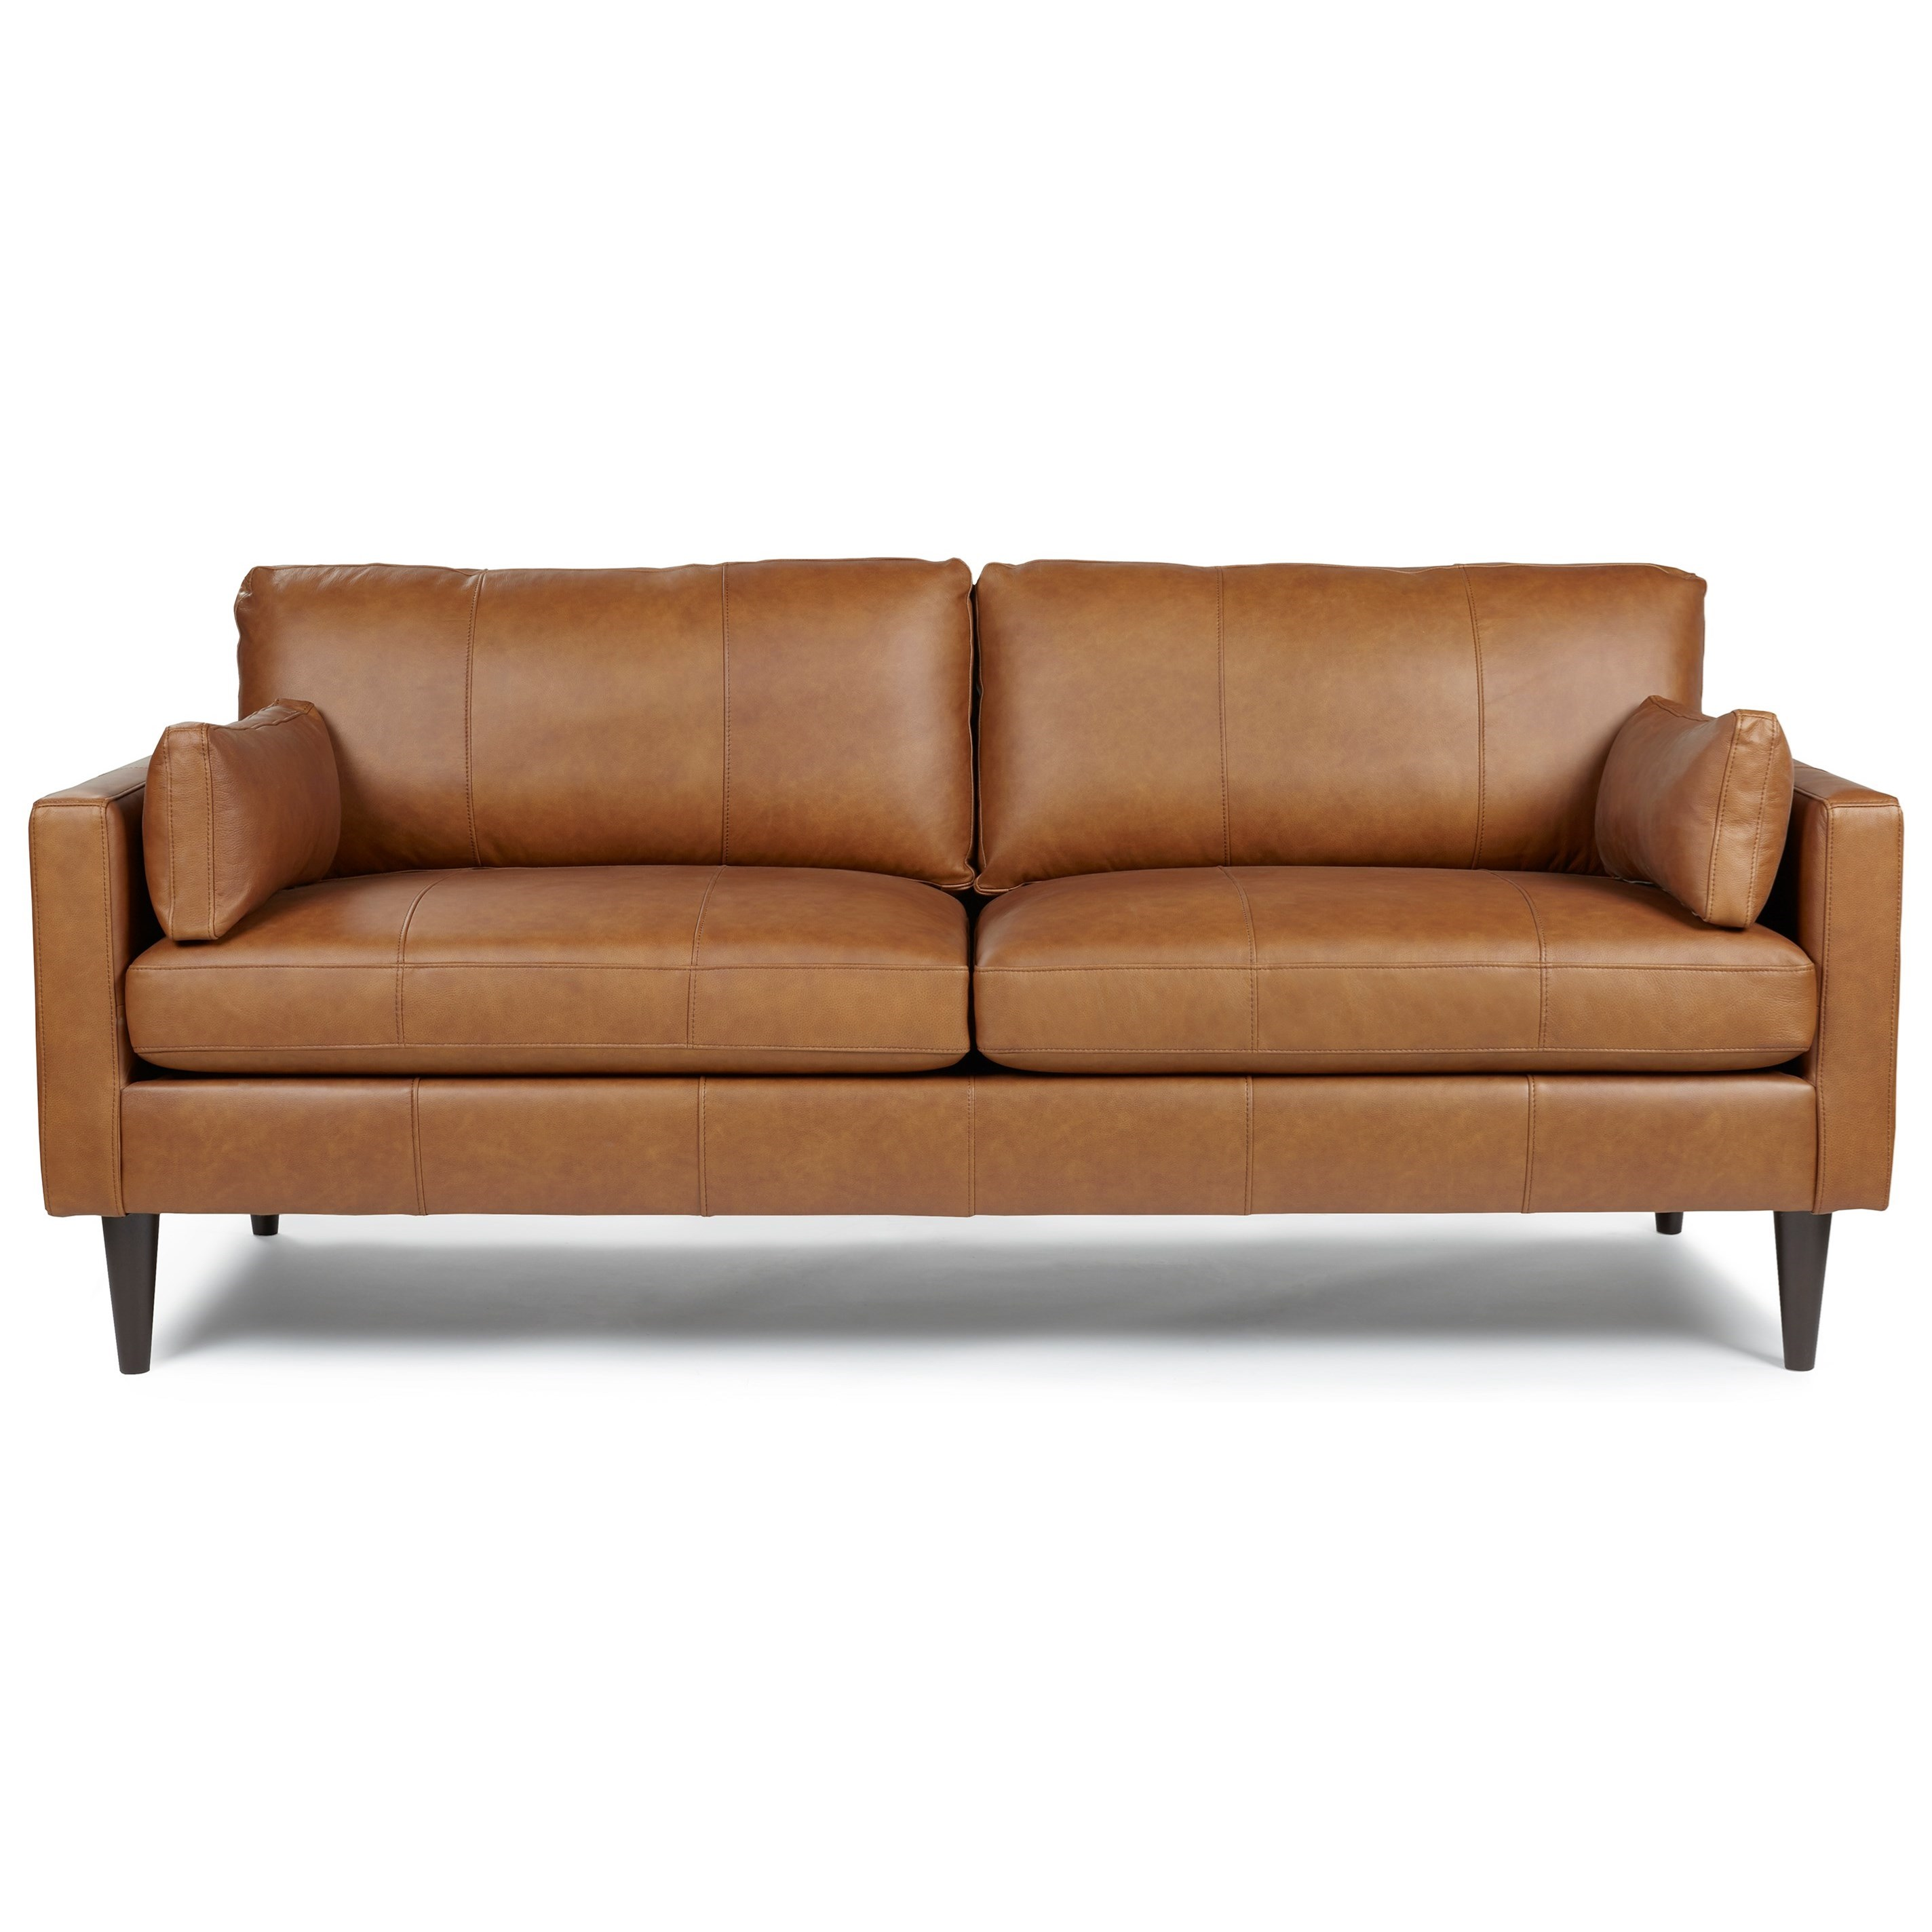 Trafton Sofa by Best Home Furnishings at Stoney Creek Furniture